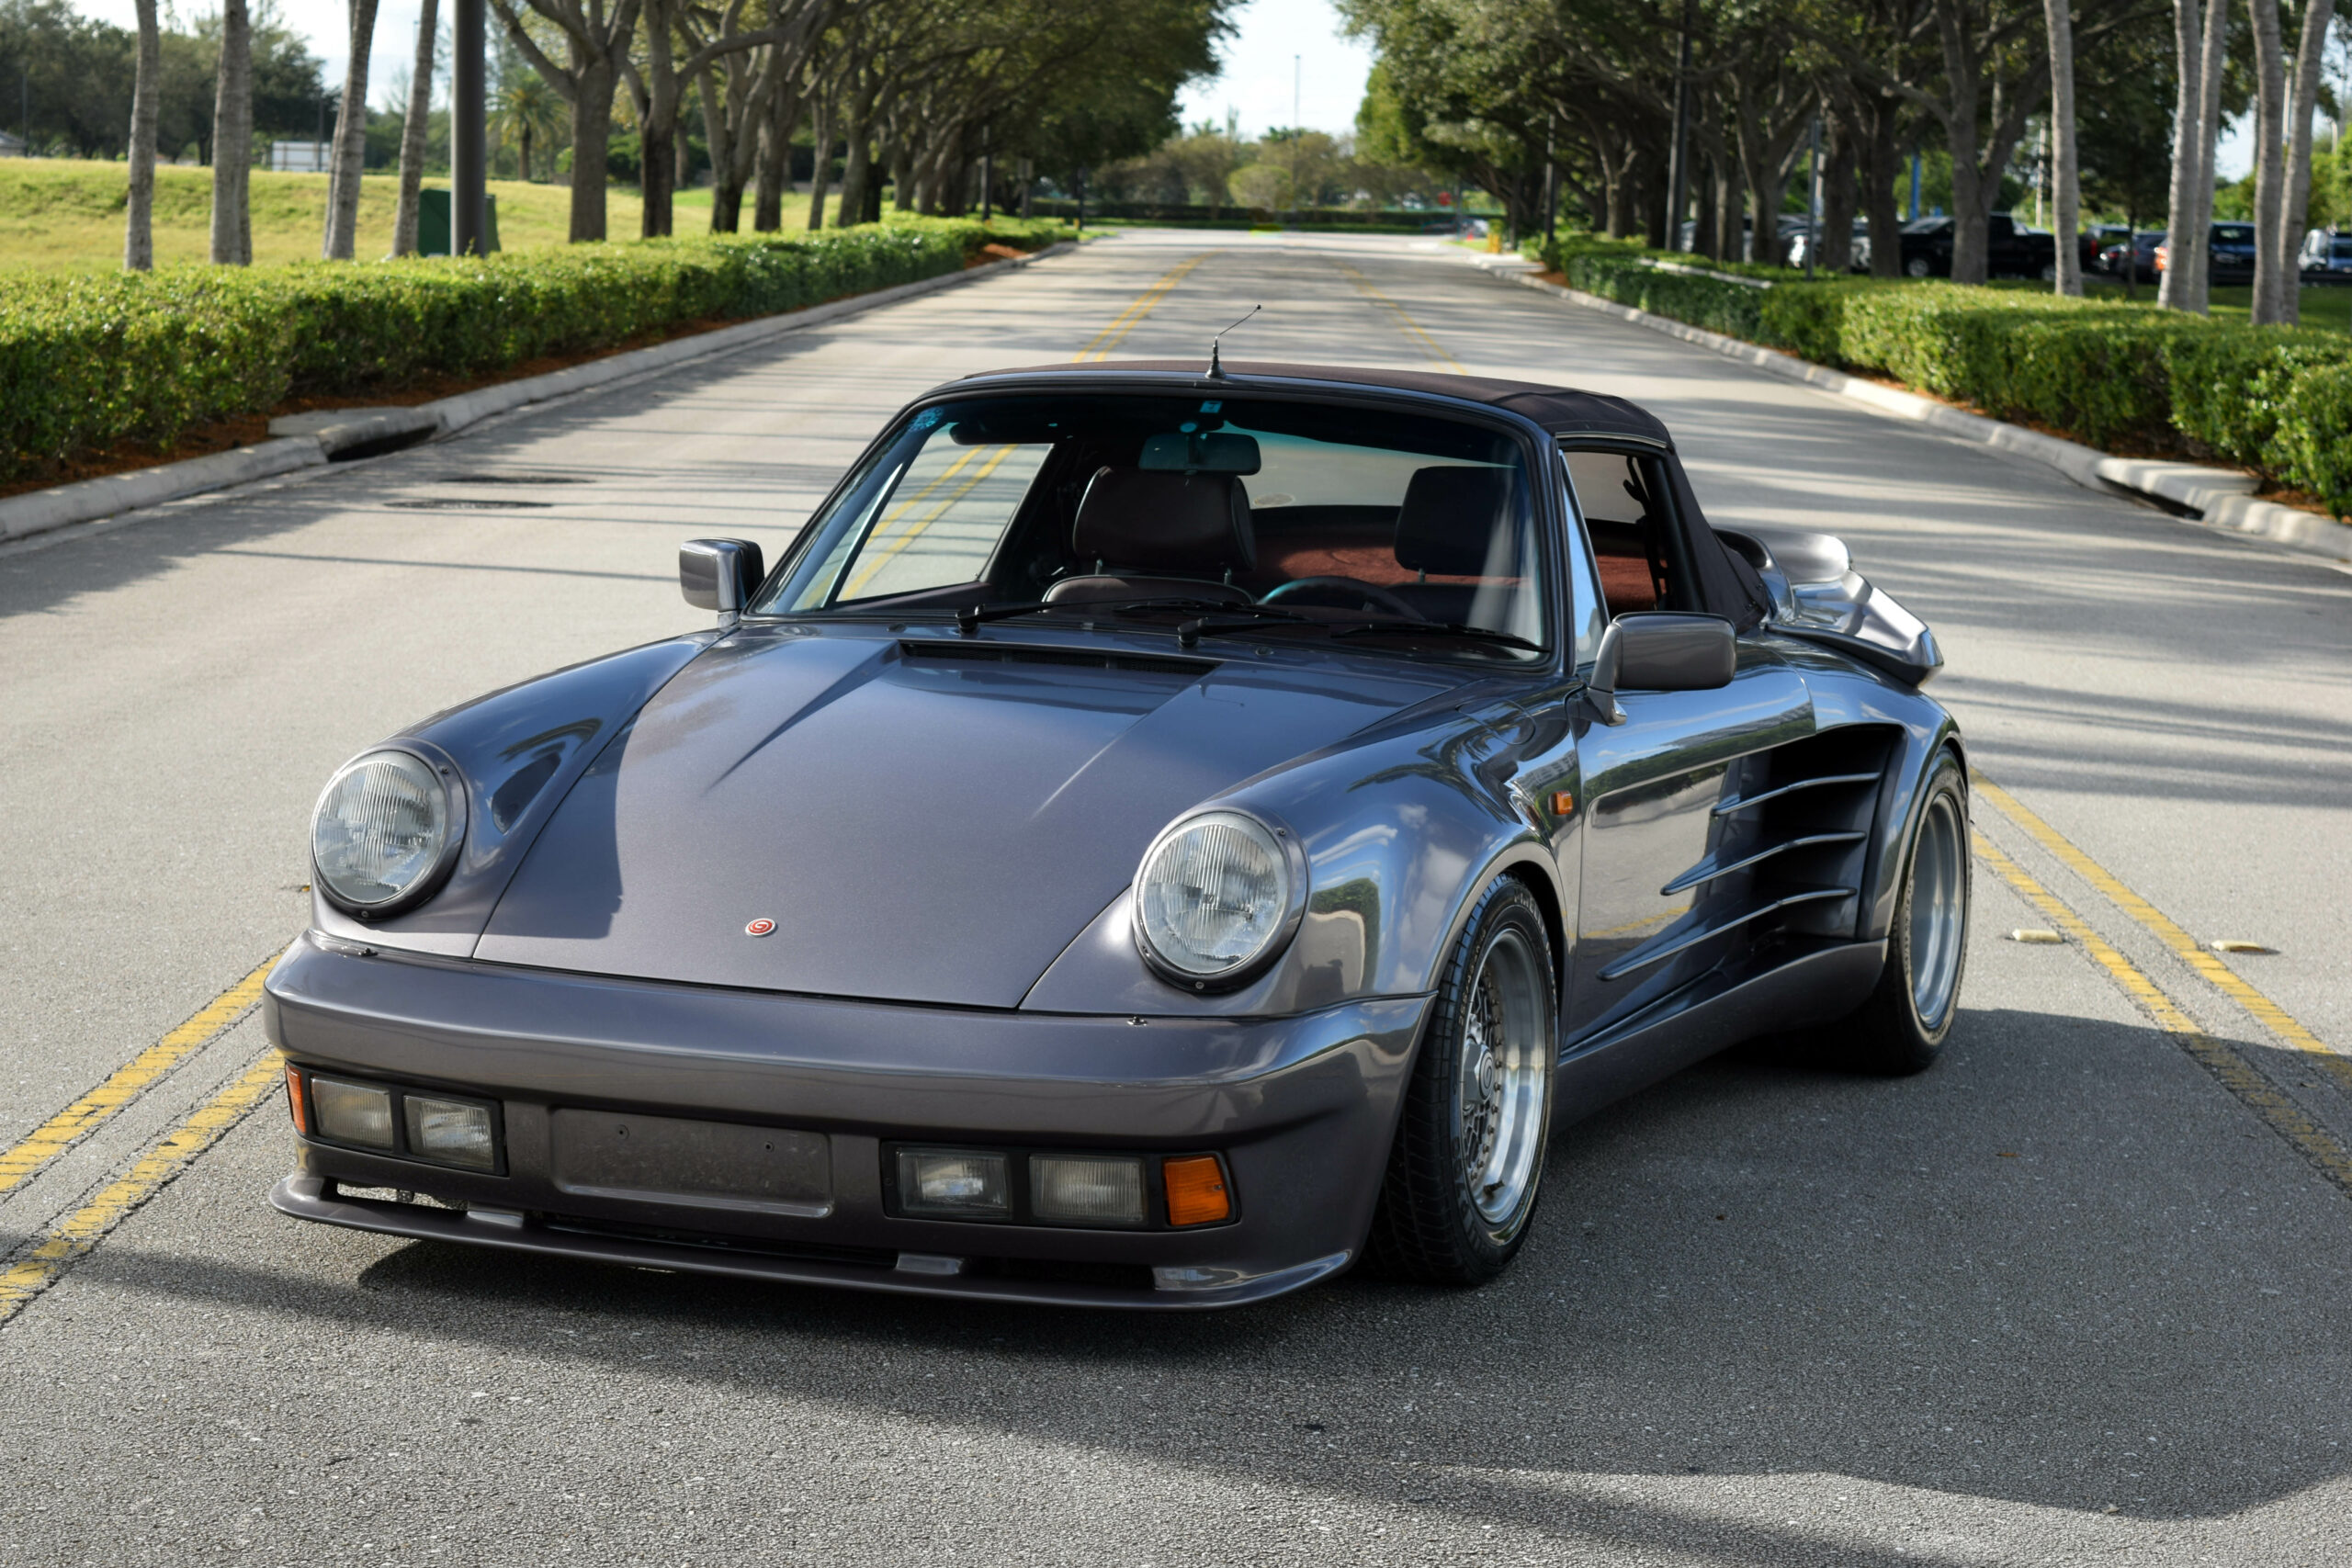 1993 Porsche 911 Gemballa Cyrrus Authentic Gemballa Cyrrus, 1 of 15 ever made – turbo look wide body 930 look